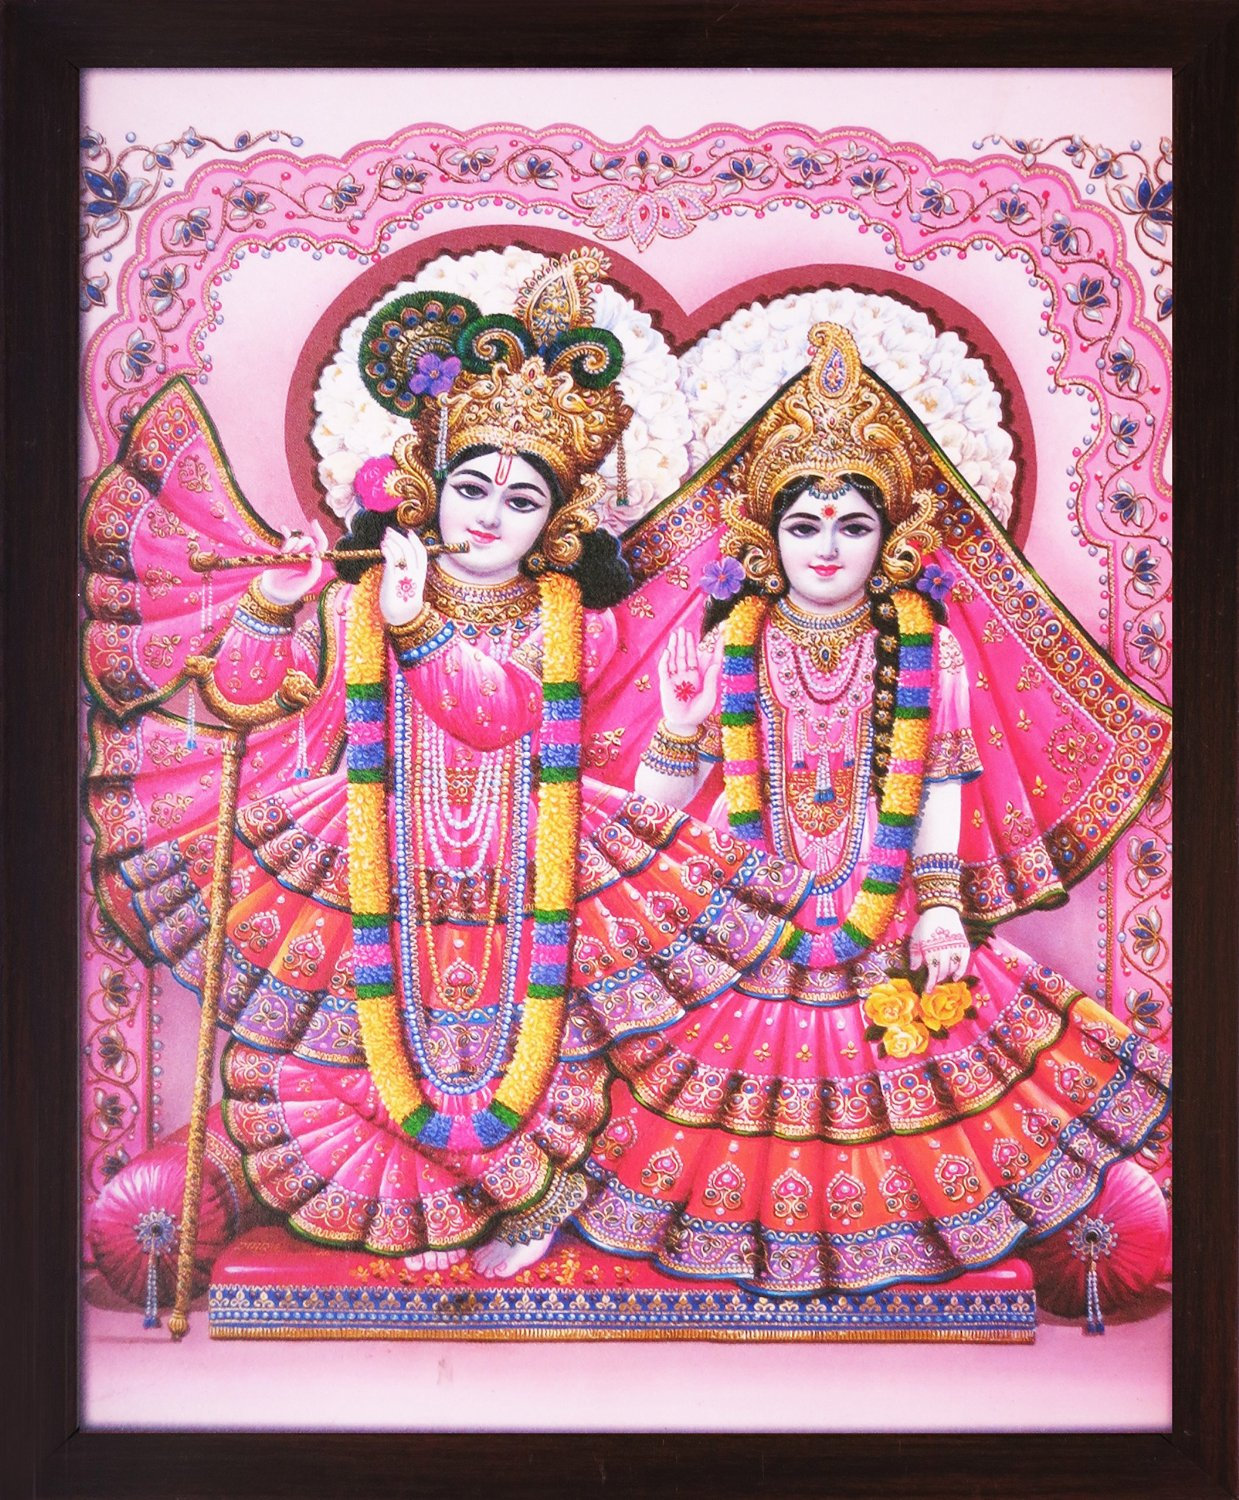 Lord Radha Krishna Wearing Elegant & Indiantraditiona Dress, a Decorative Religious Poster with Frame